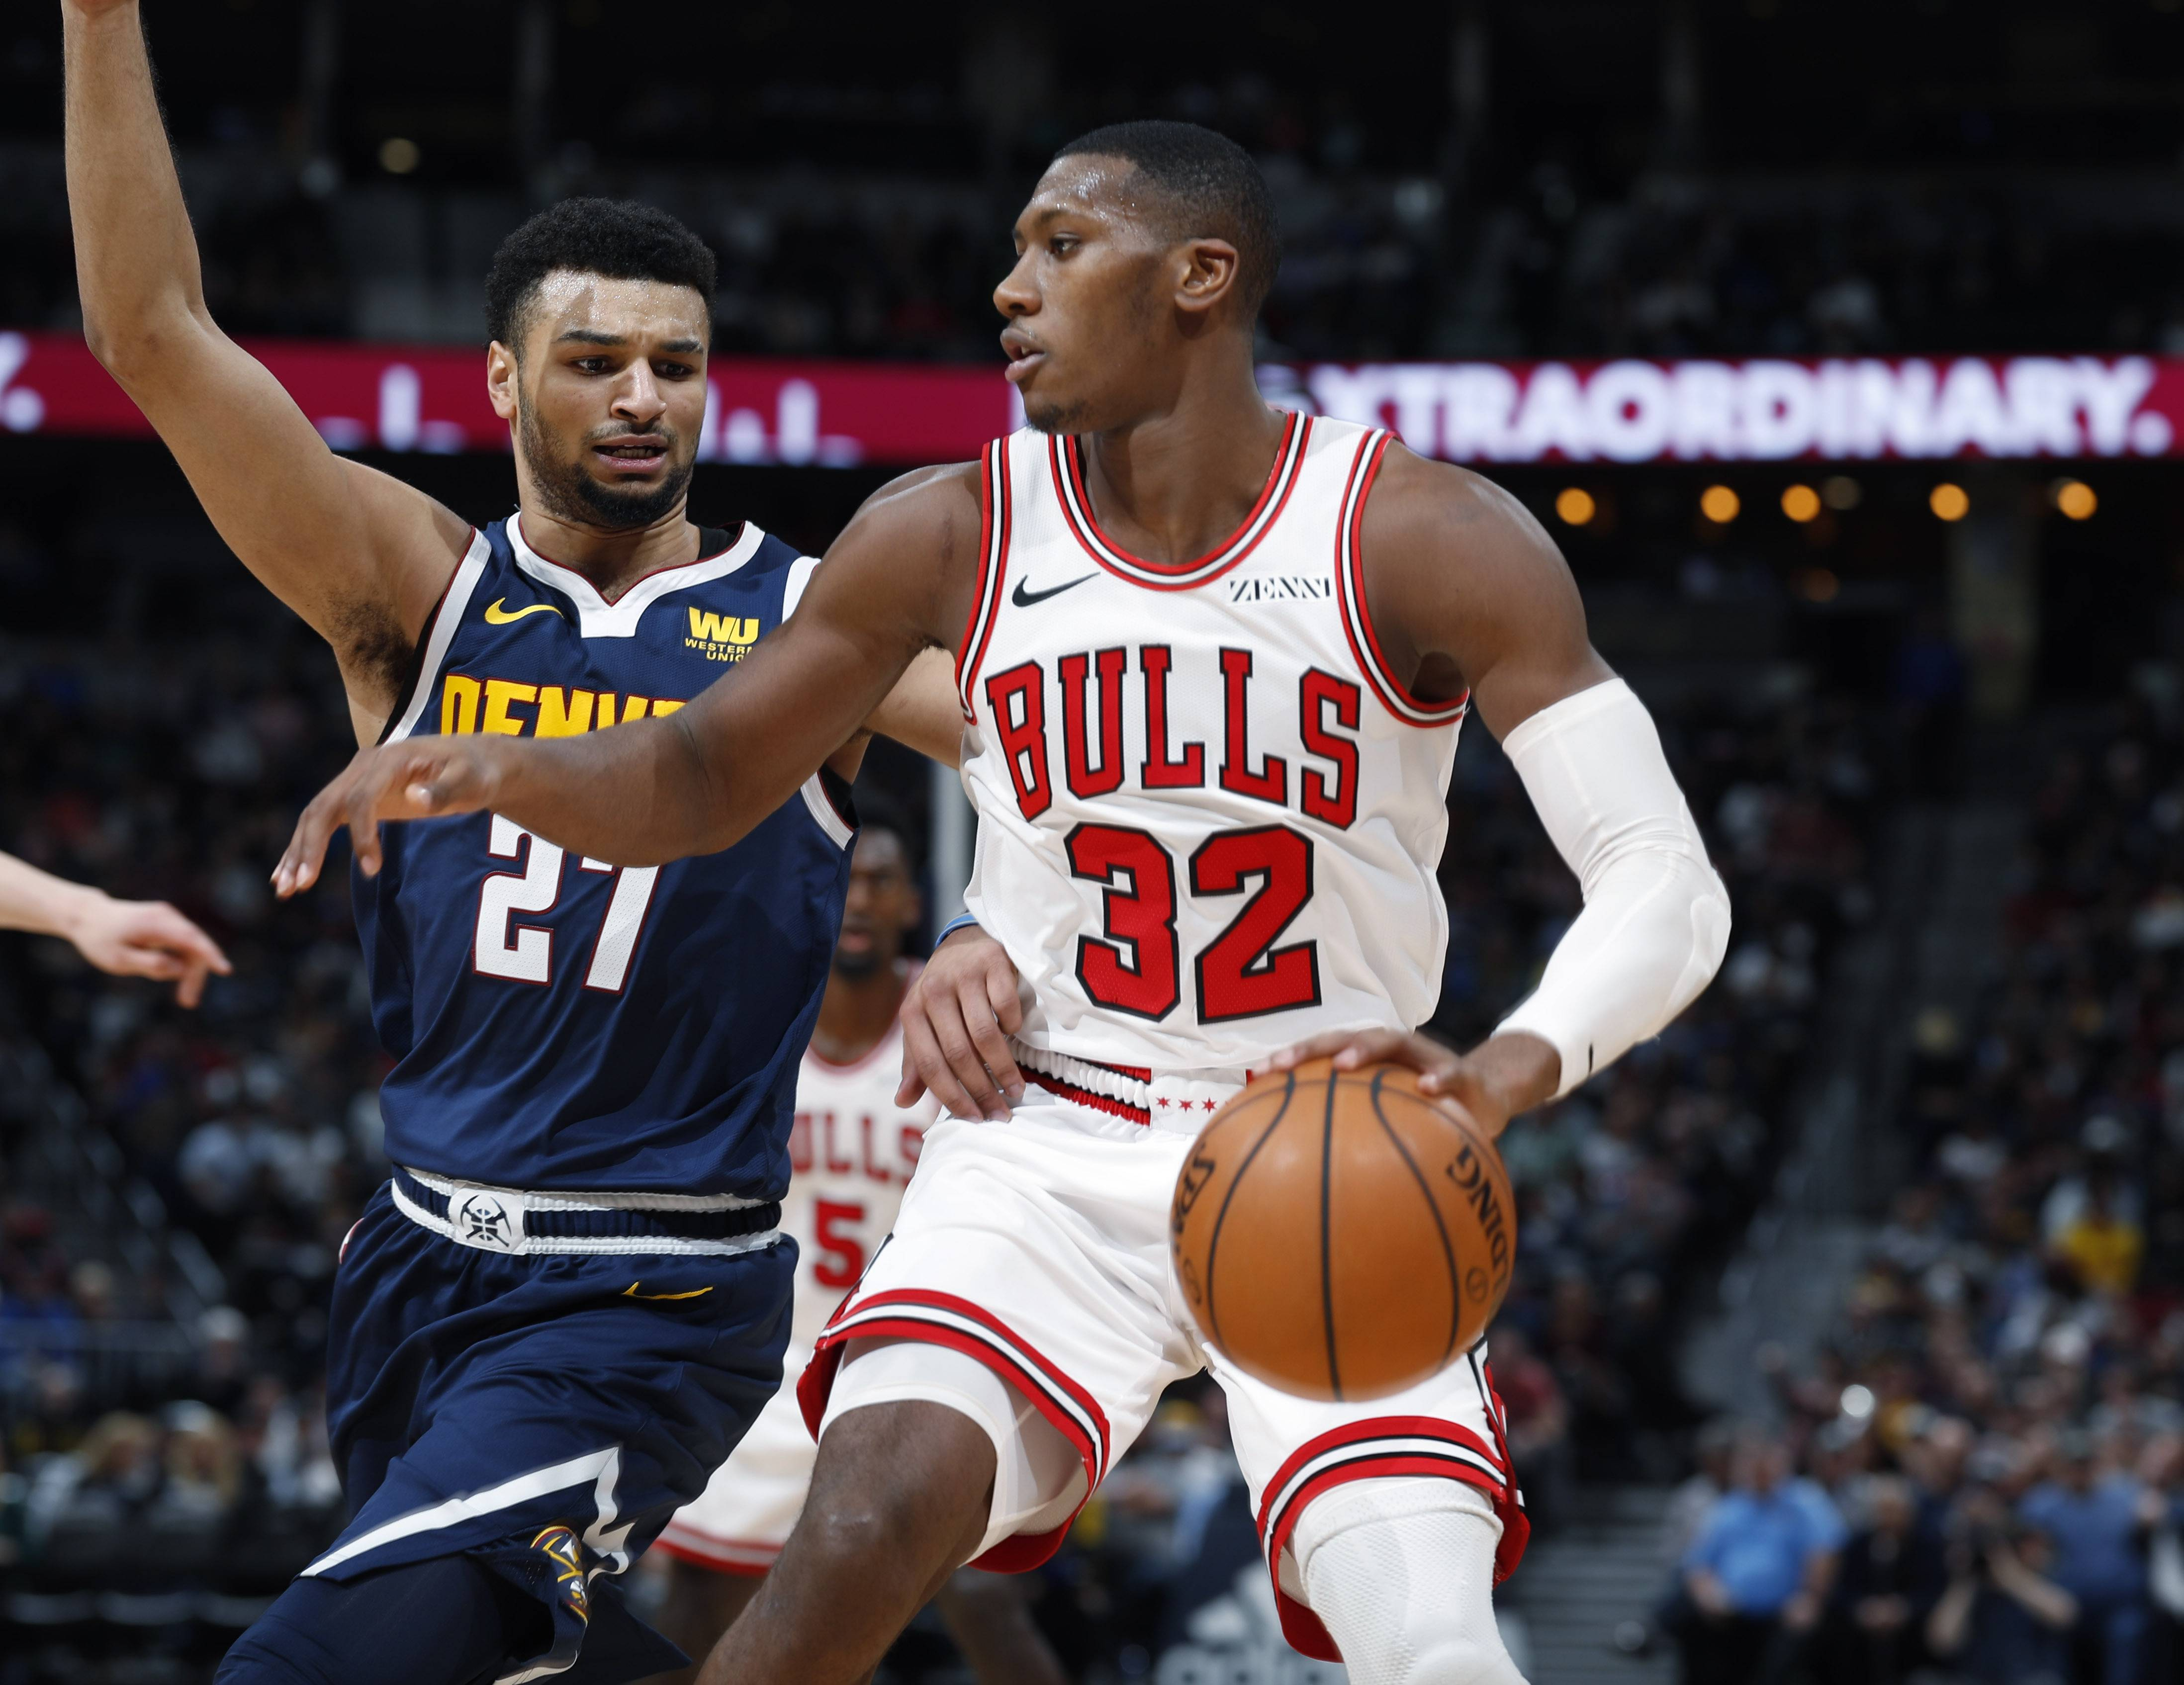 Chicago Bulls guard Kris Dunn (32) works against Denver Nuggets guard Jamal Murray (27) in the second half of an NBA basketball game, Thursday, Jan. 17, 2019, in Denver. The Nuggets won 135-105.